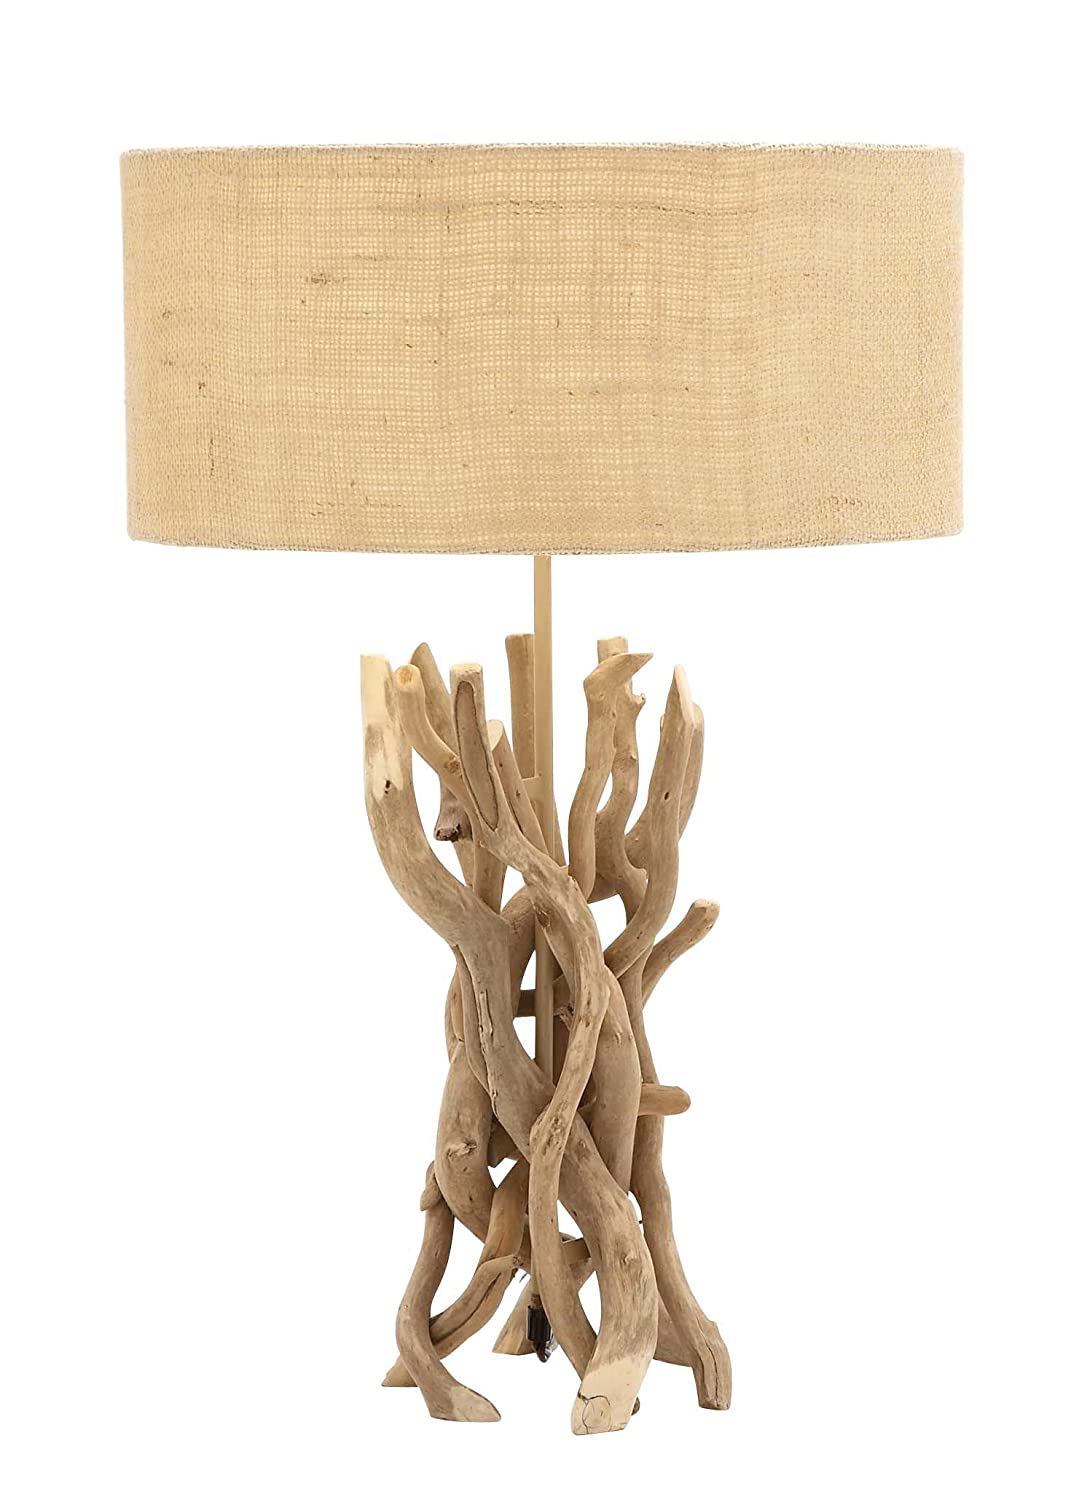 Amazon.com: Benzara 67711 The Cool Driftwood Metal Table Lamp: Home U0026  Kitchen